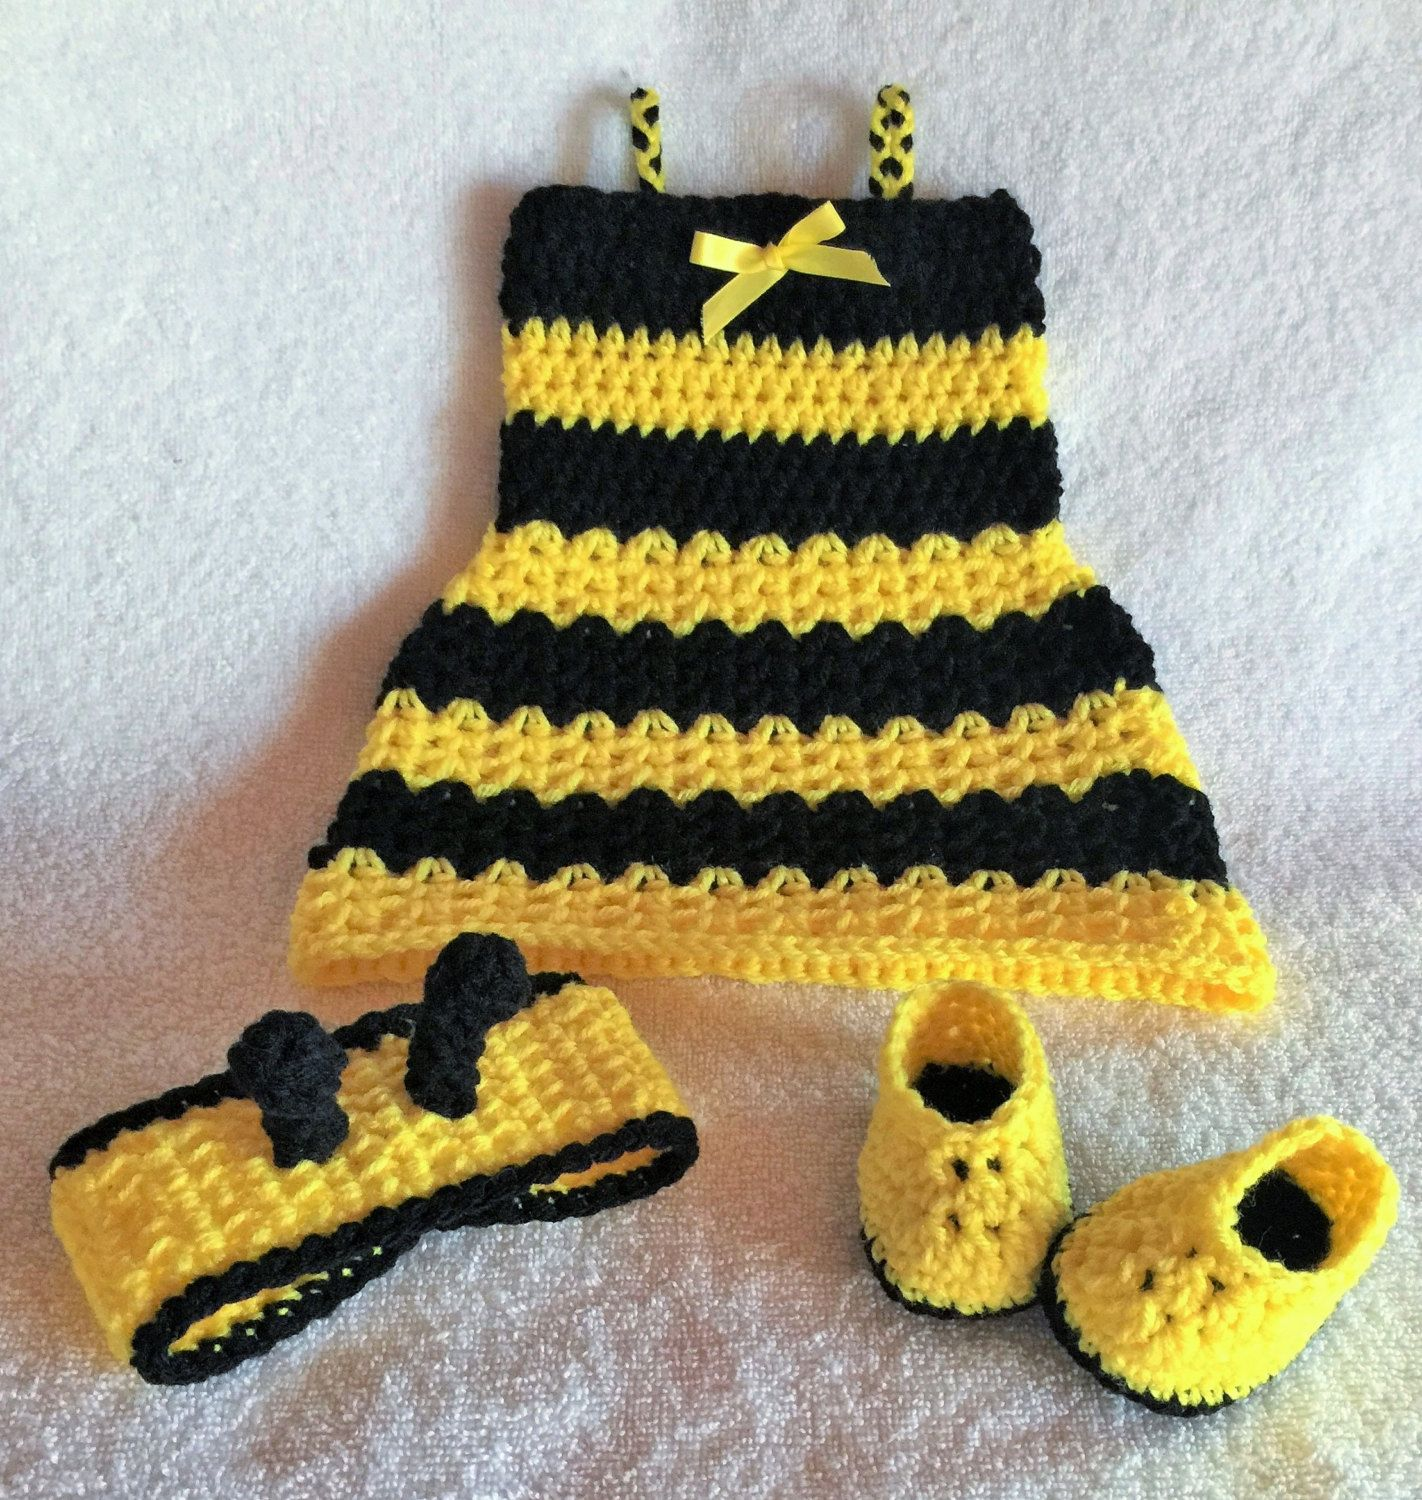 Child Bathe Present Present For Her Bumble Bee Child Bathe